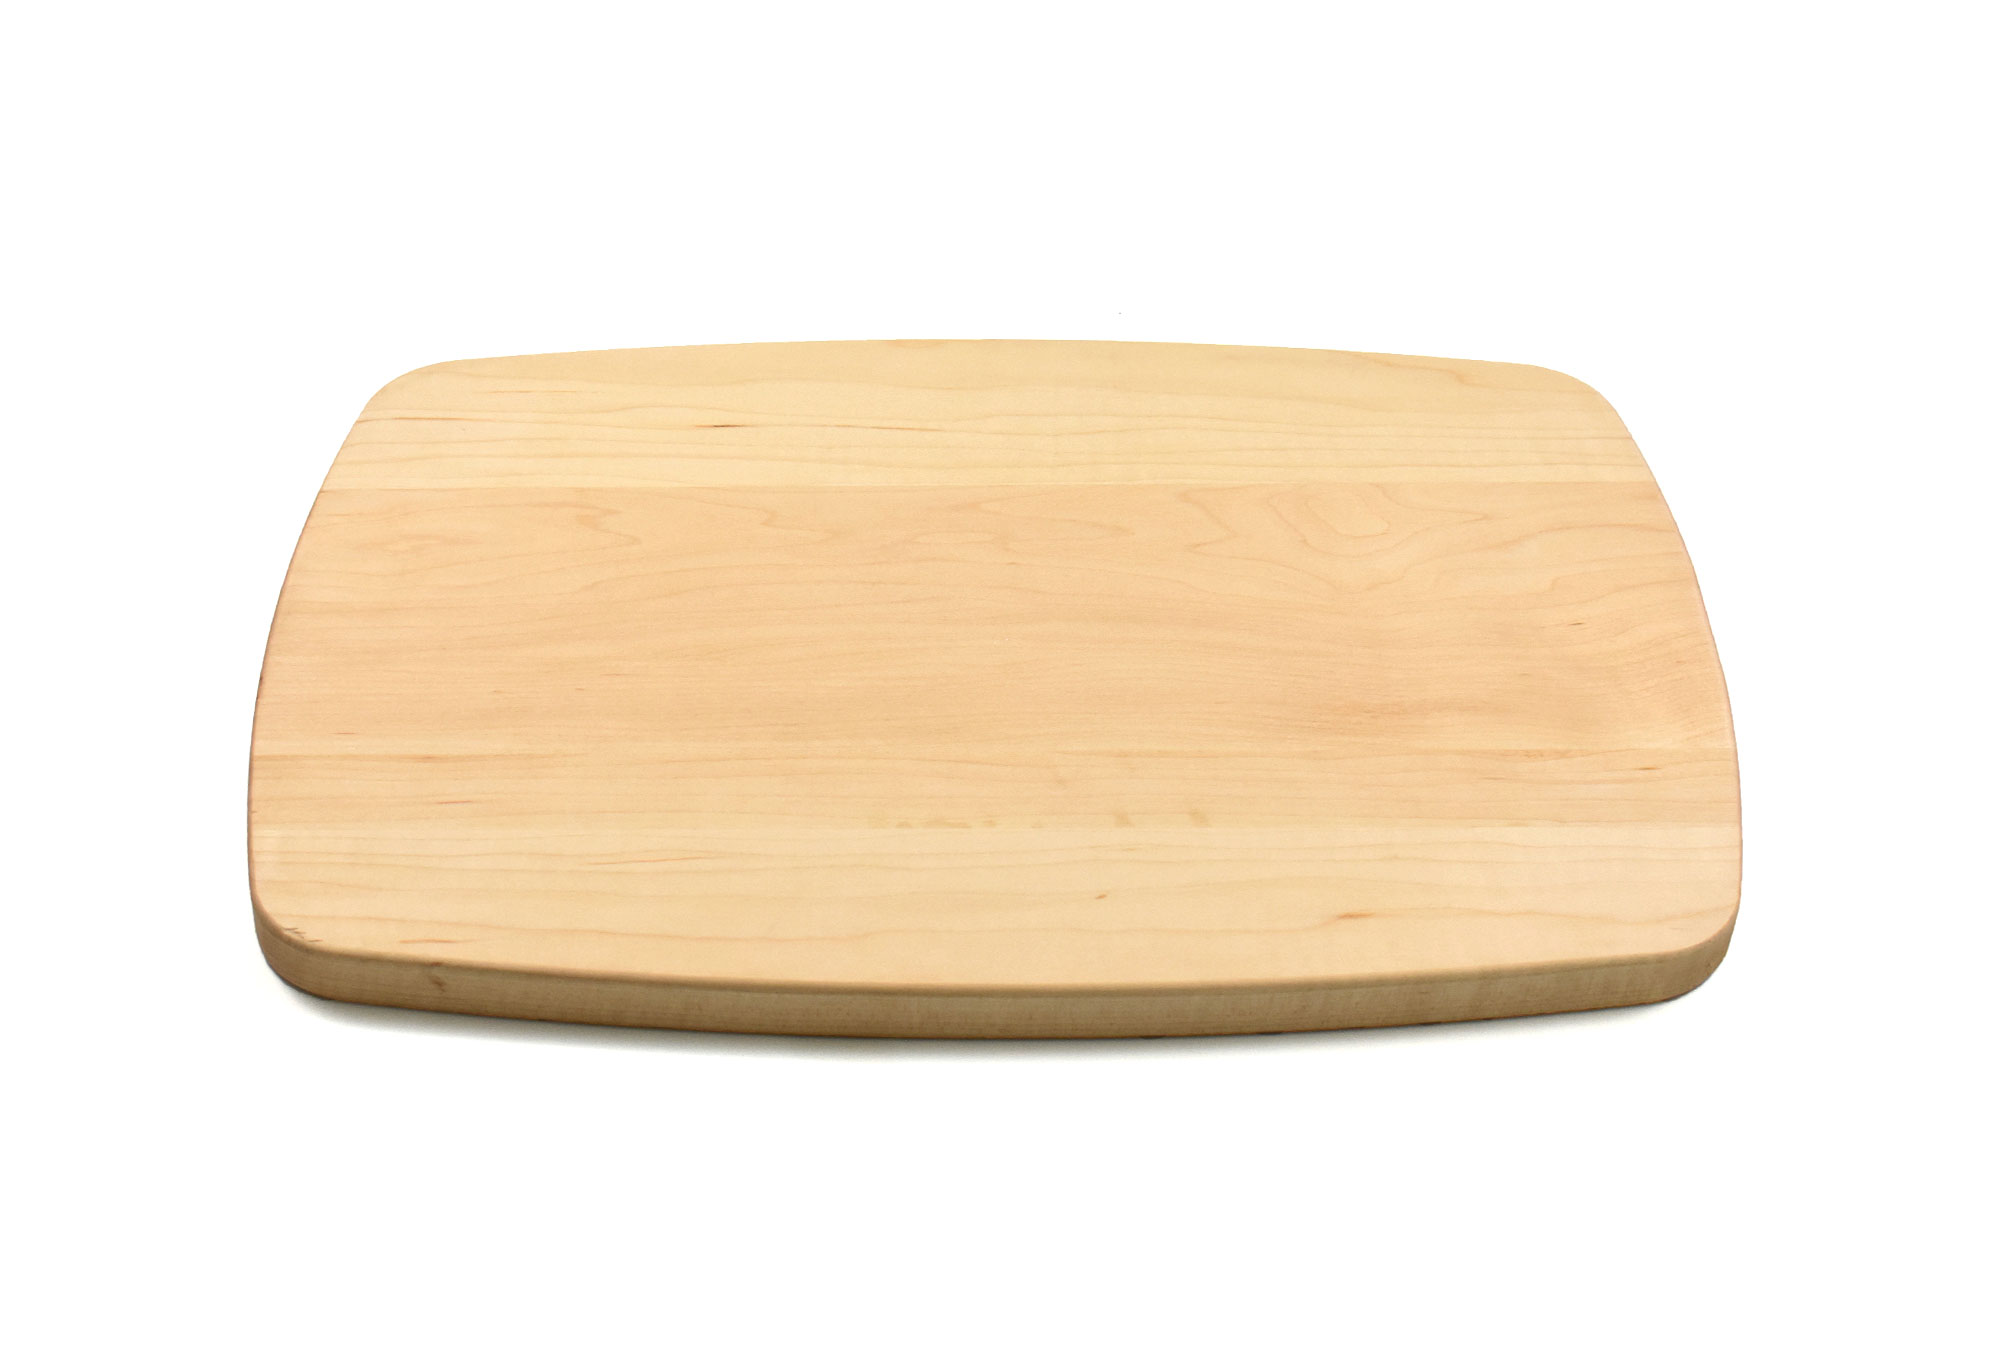 Maple large rectangular curved cutting board with rounded corners